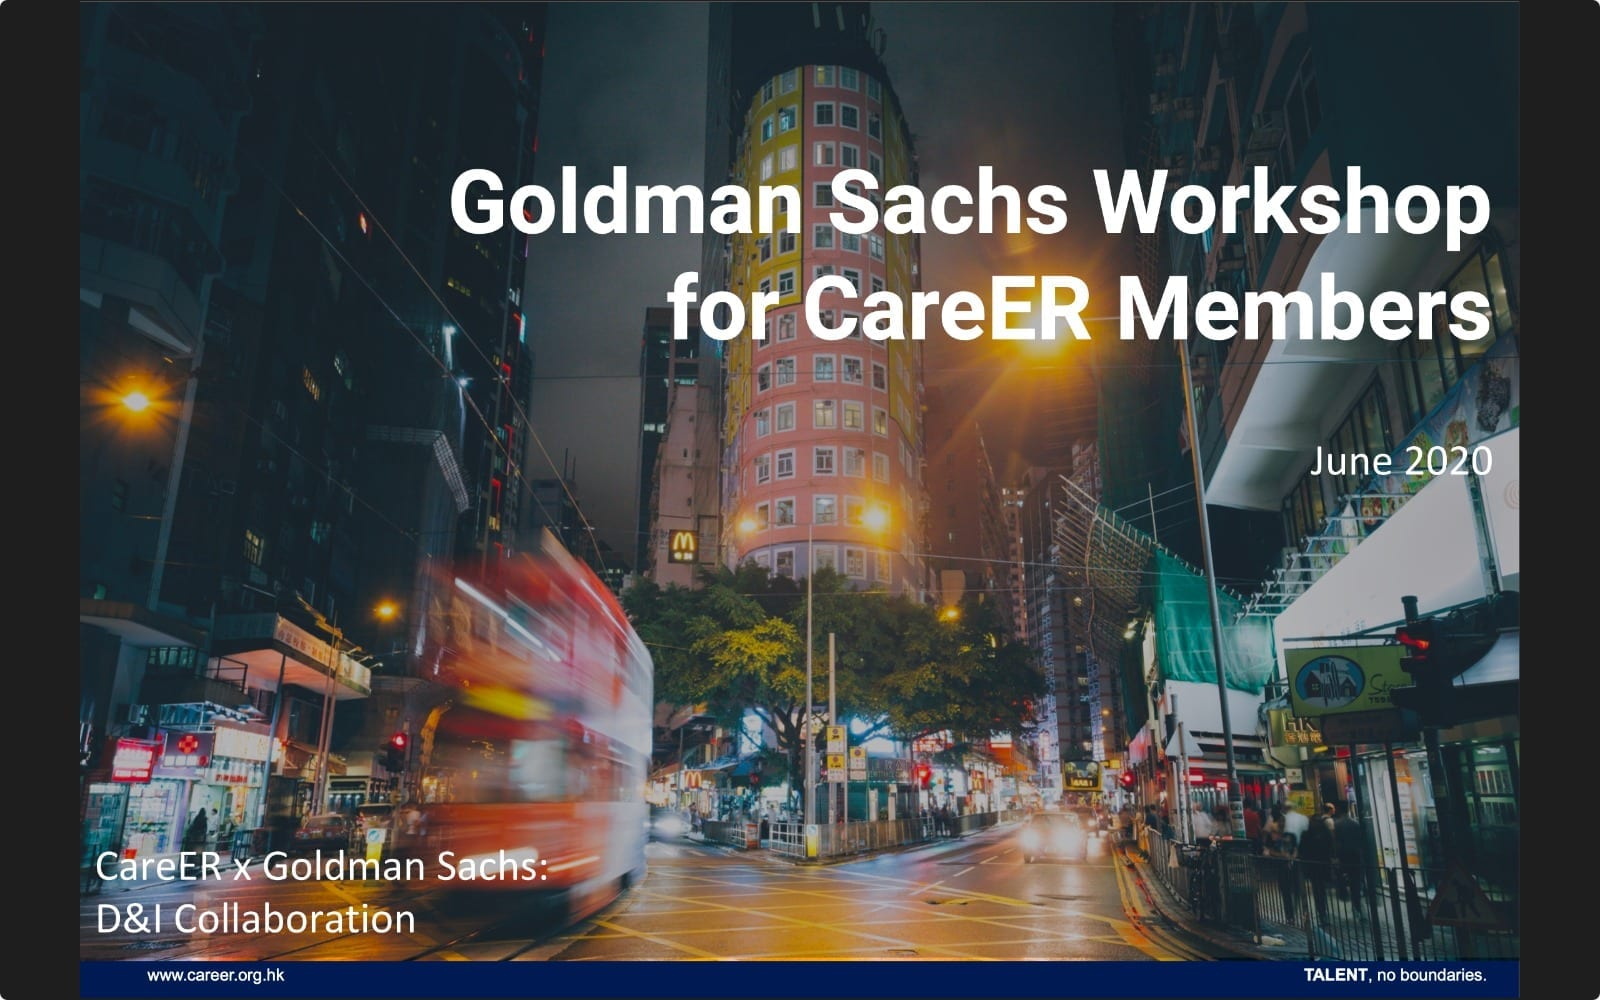 CareER x Goldman Sachs Job Skills Training Workshop